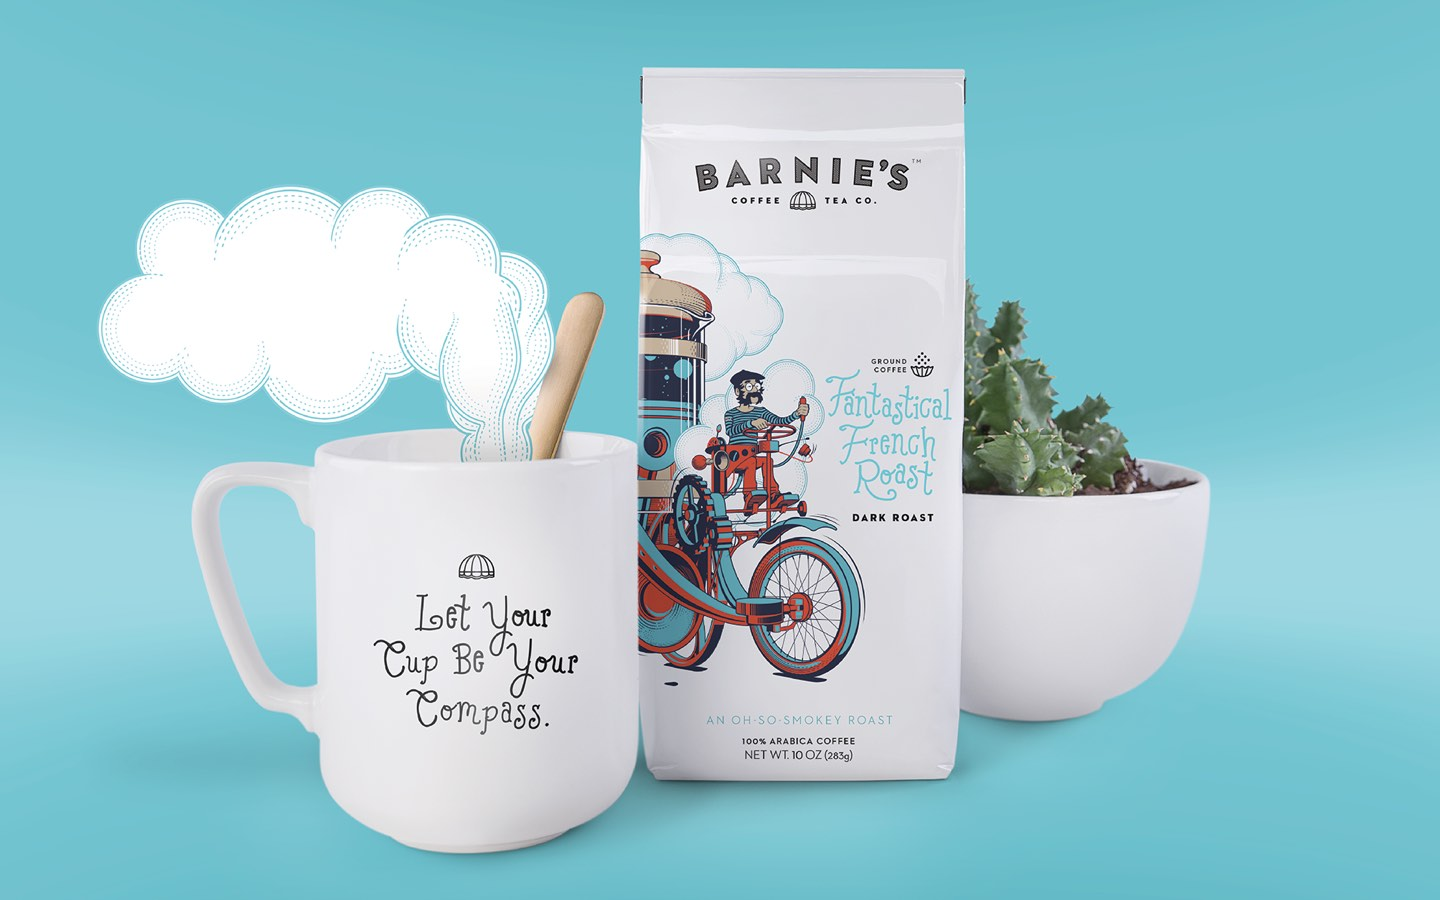 Barnies Packaging